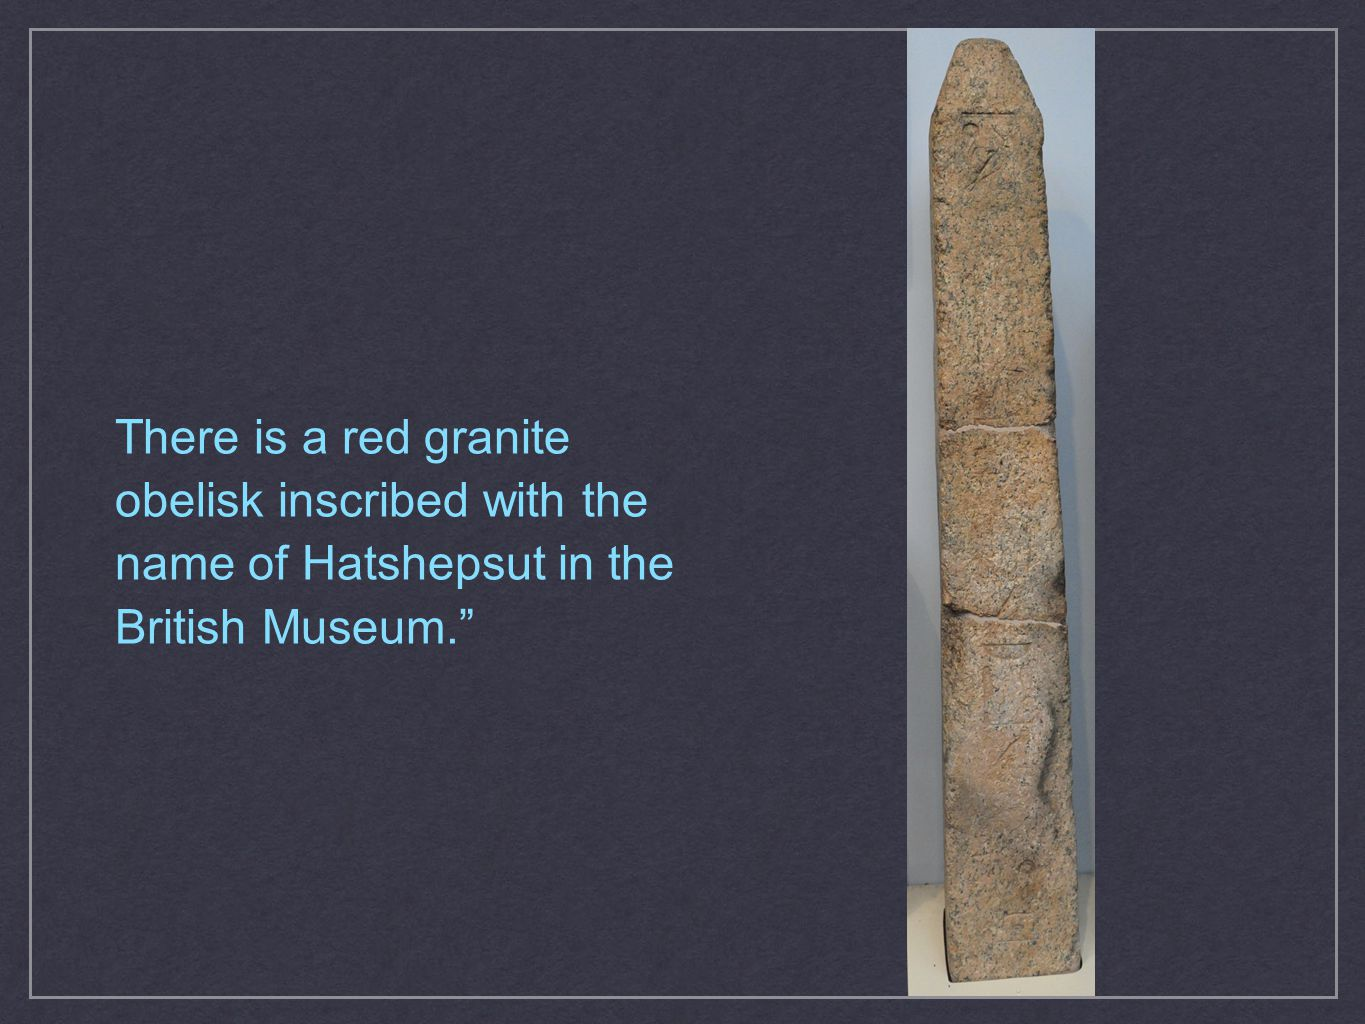 There is a red granite obelisk inscribed with the name of Hatshepsut in the British Museum.